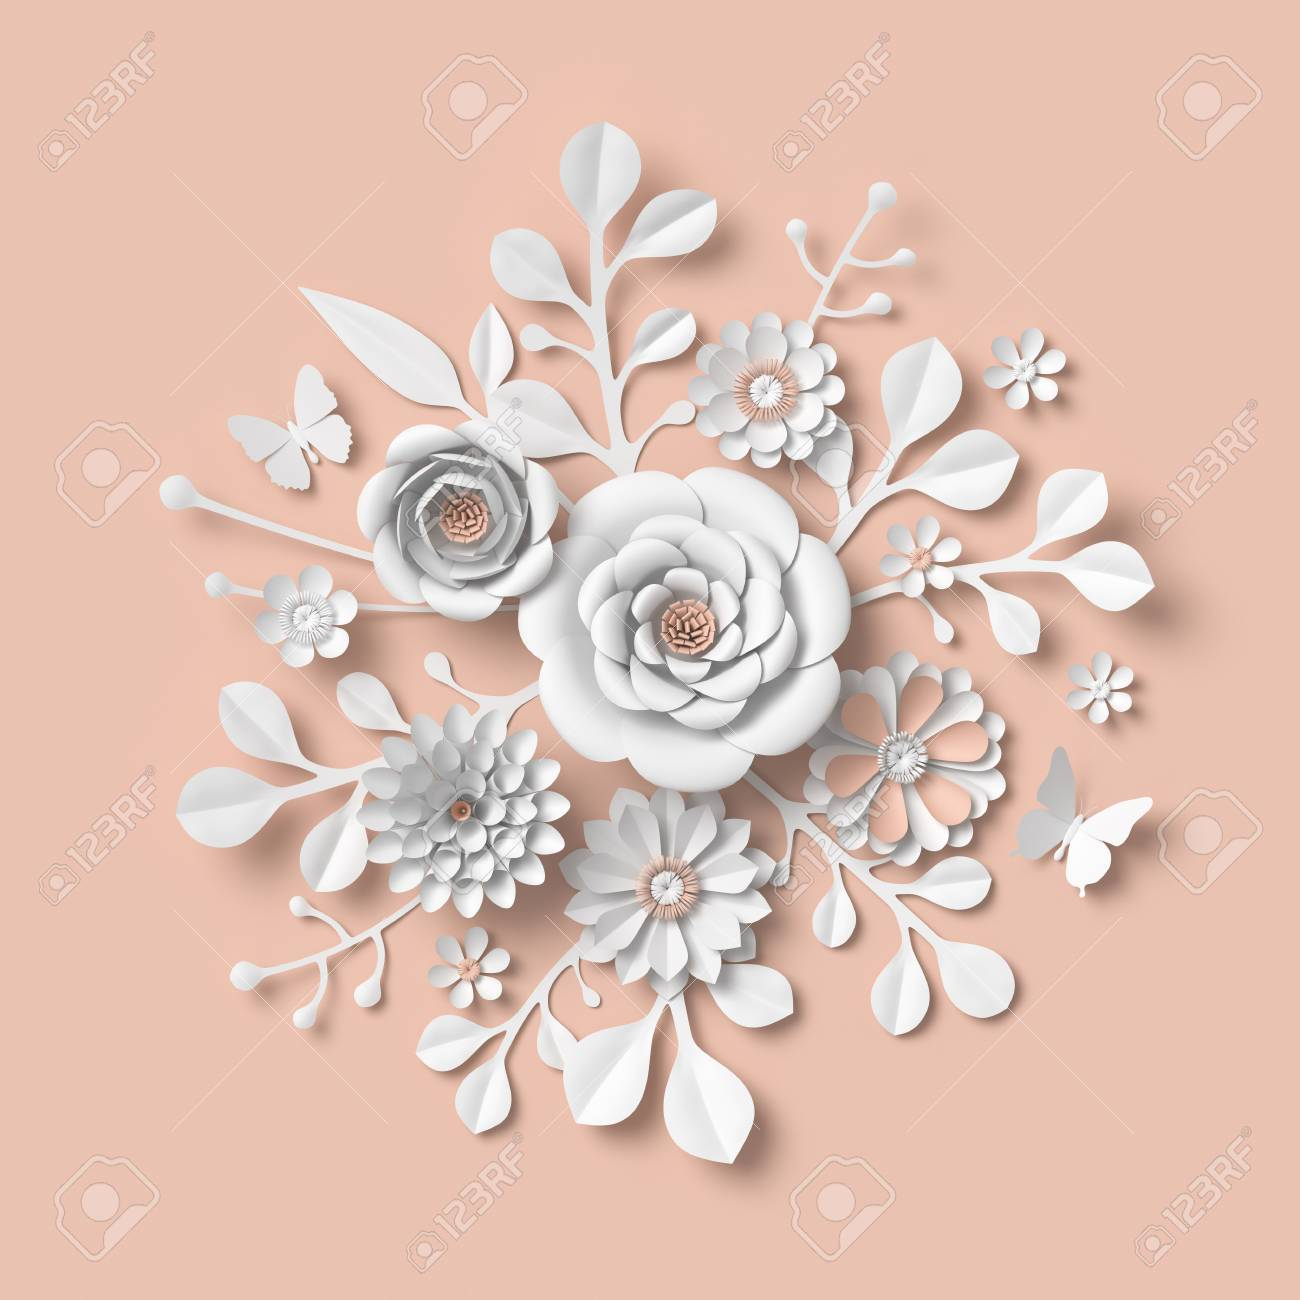 3d rendering white paper flowers isolated on pastel peach background stock photo picture and royalty free image image 98834246 3d rendering white paper flowers isolated on pastel peach background